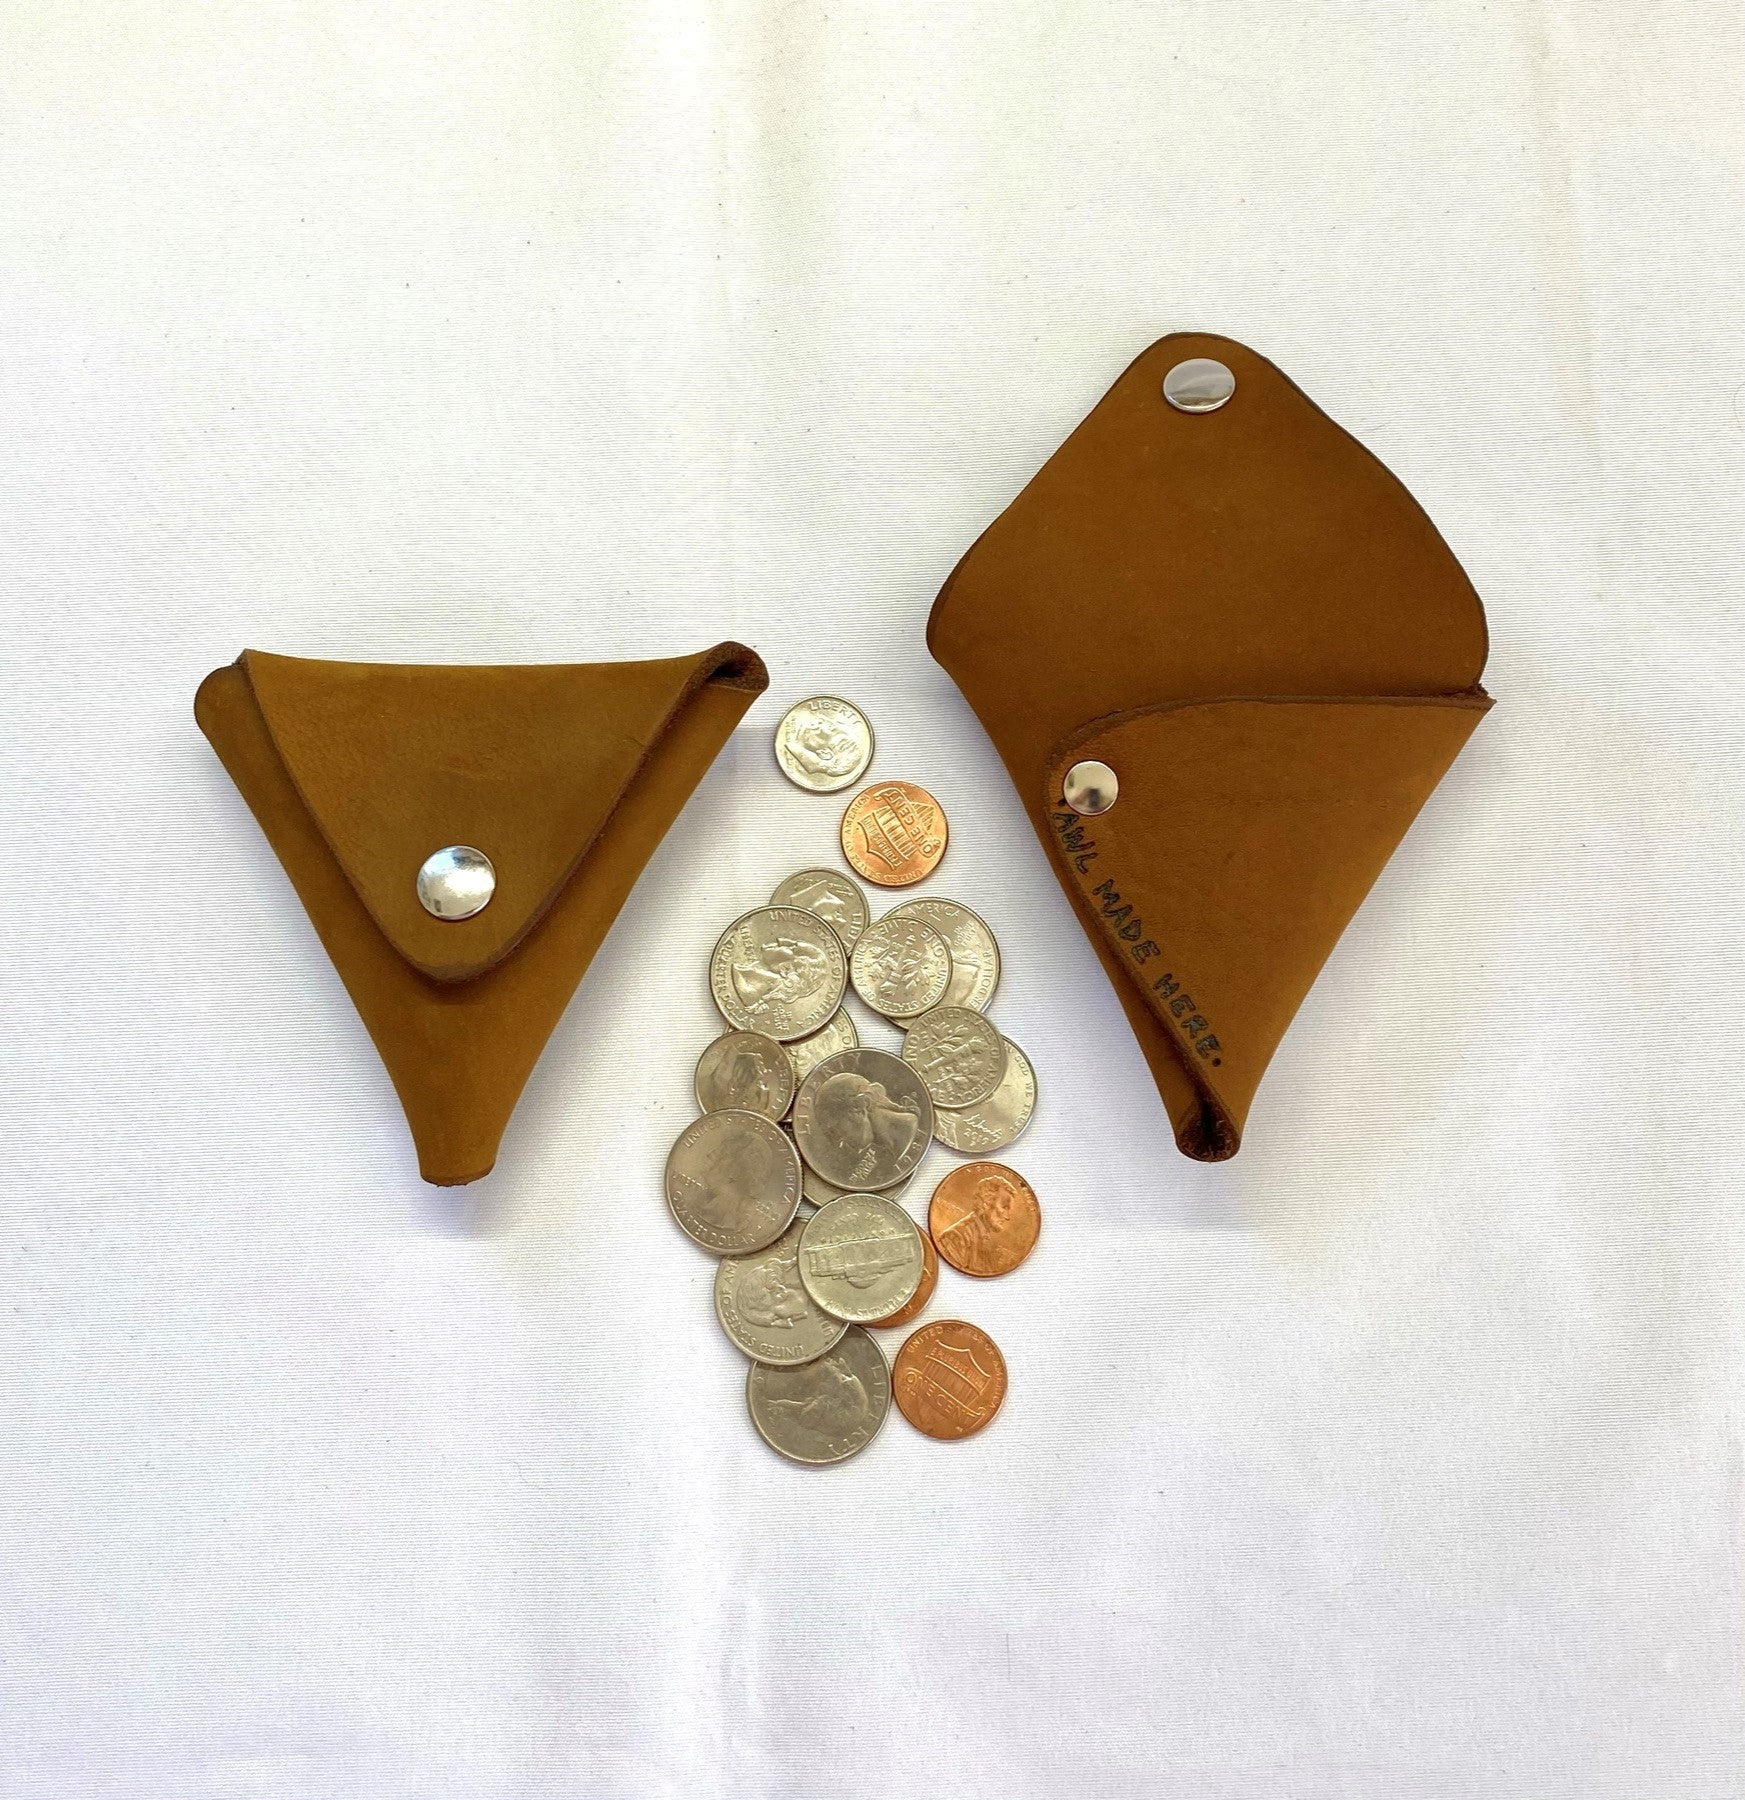 Coin Triangles